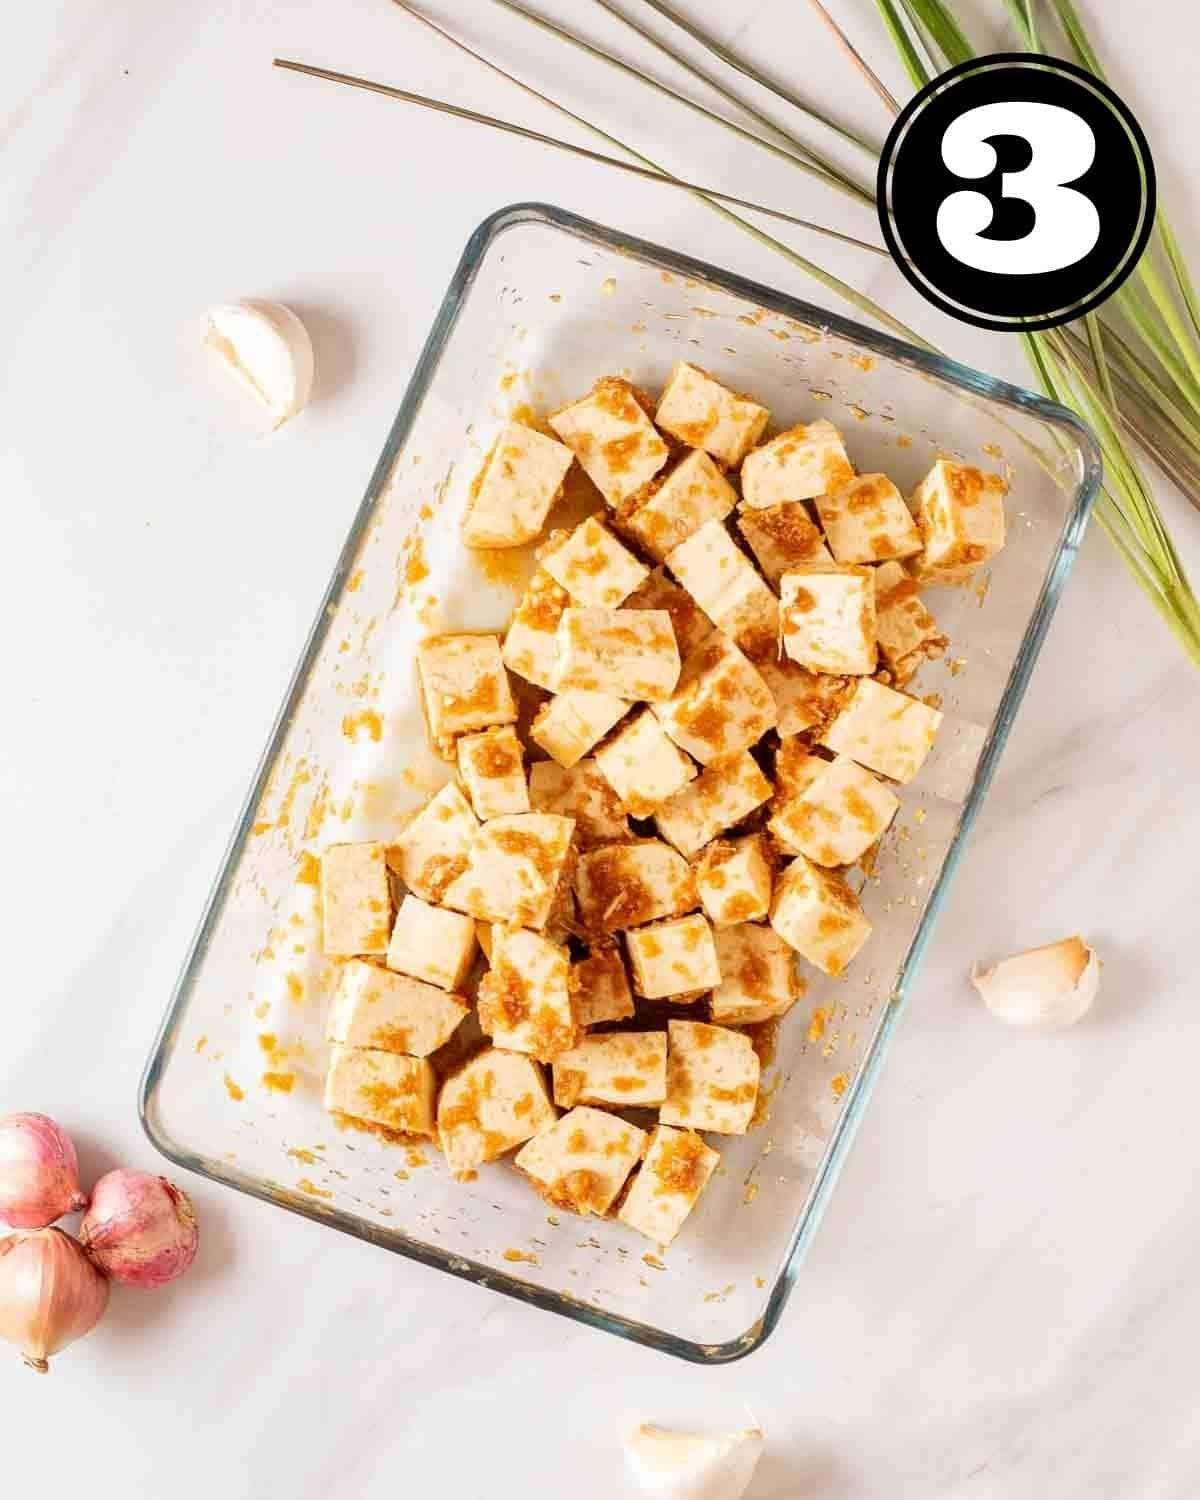 Marinating tofu cubes in a glass dish with lemongrass, garlic and shallots beside.